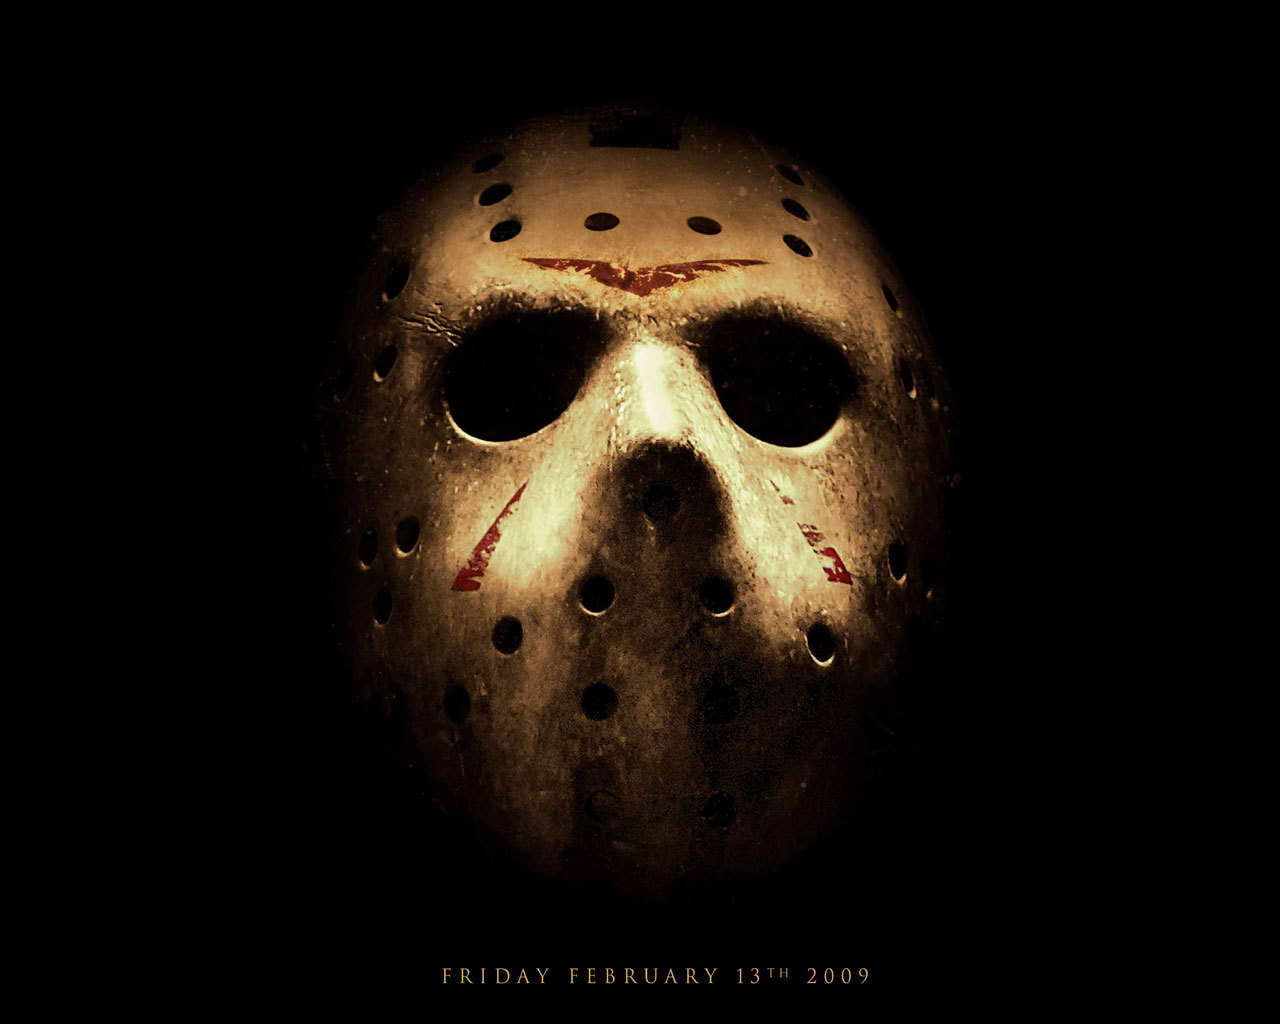 New-Friday-the-13th-wallpaper-horror-movies-2653137-1280-1024.jpg